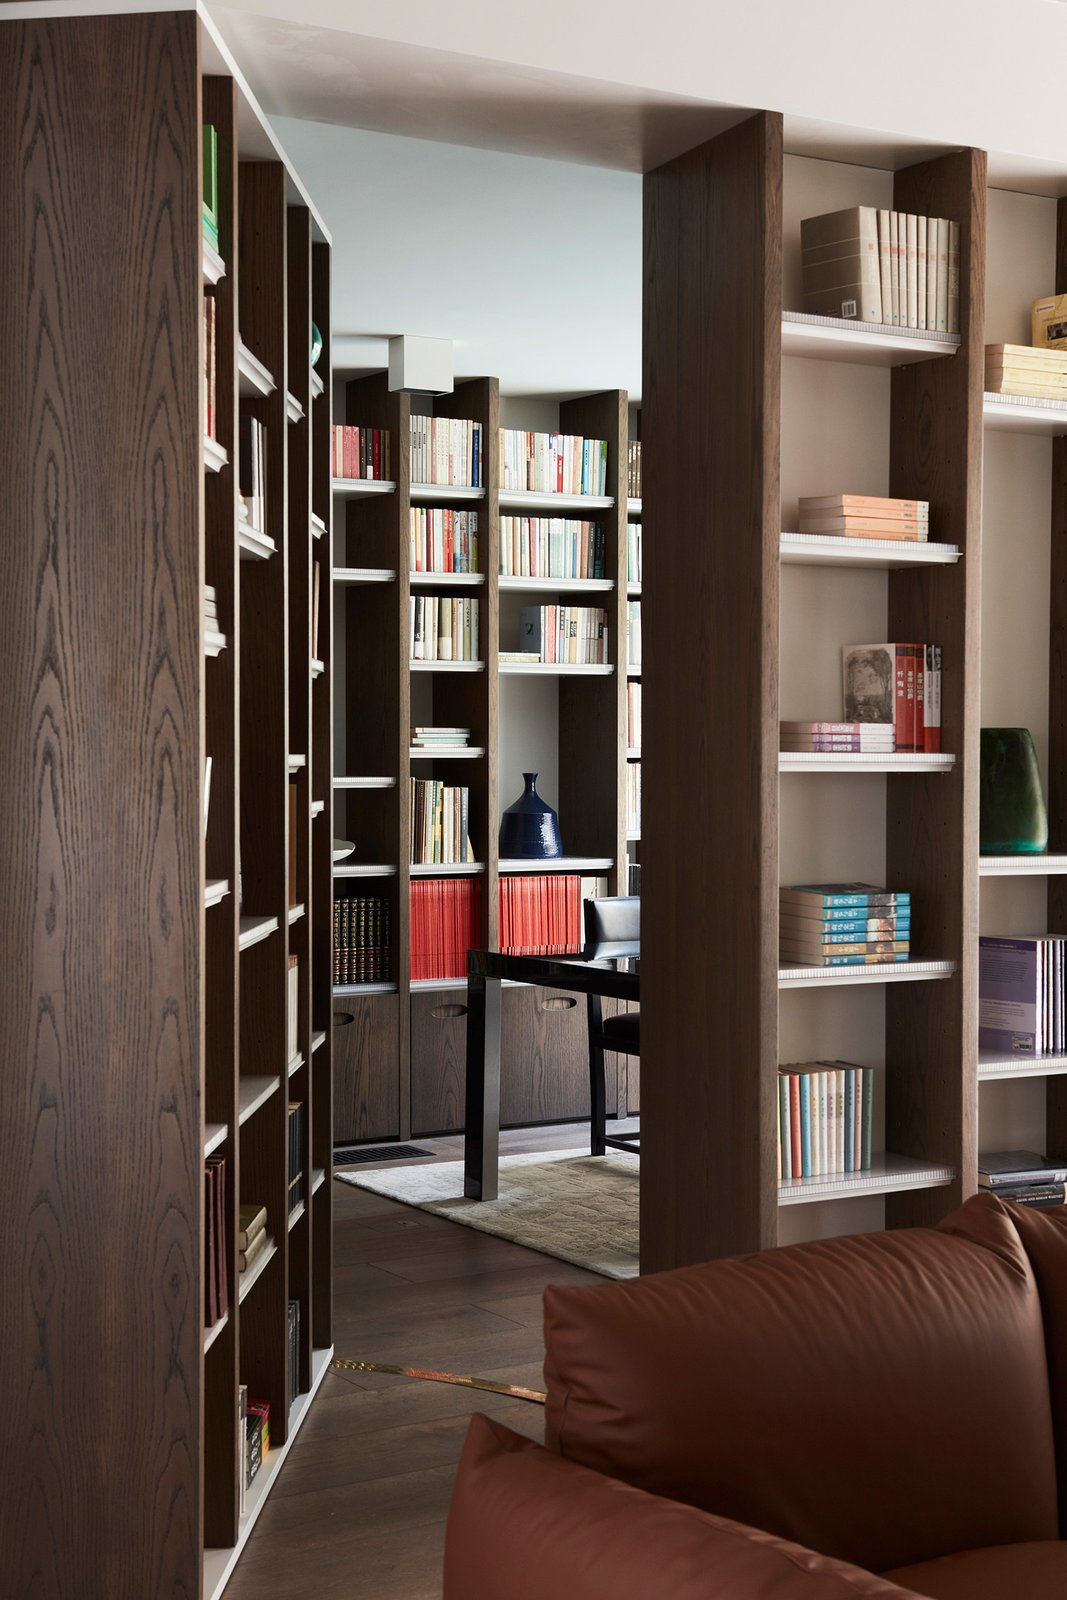 Office, Study Room Type, Bookcase, and Shelves  The Books House by Luigi Rosselli Architects